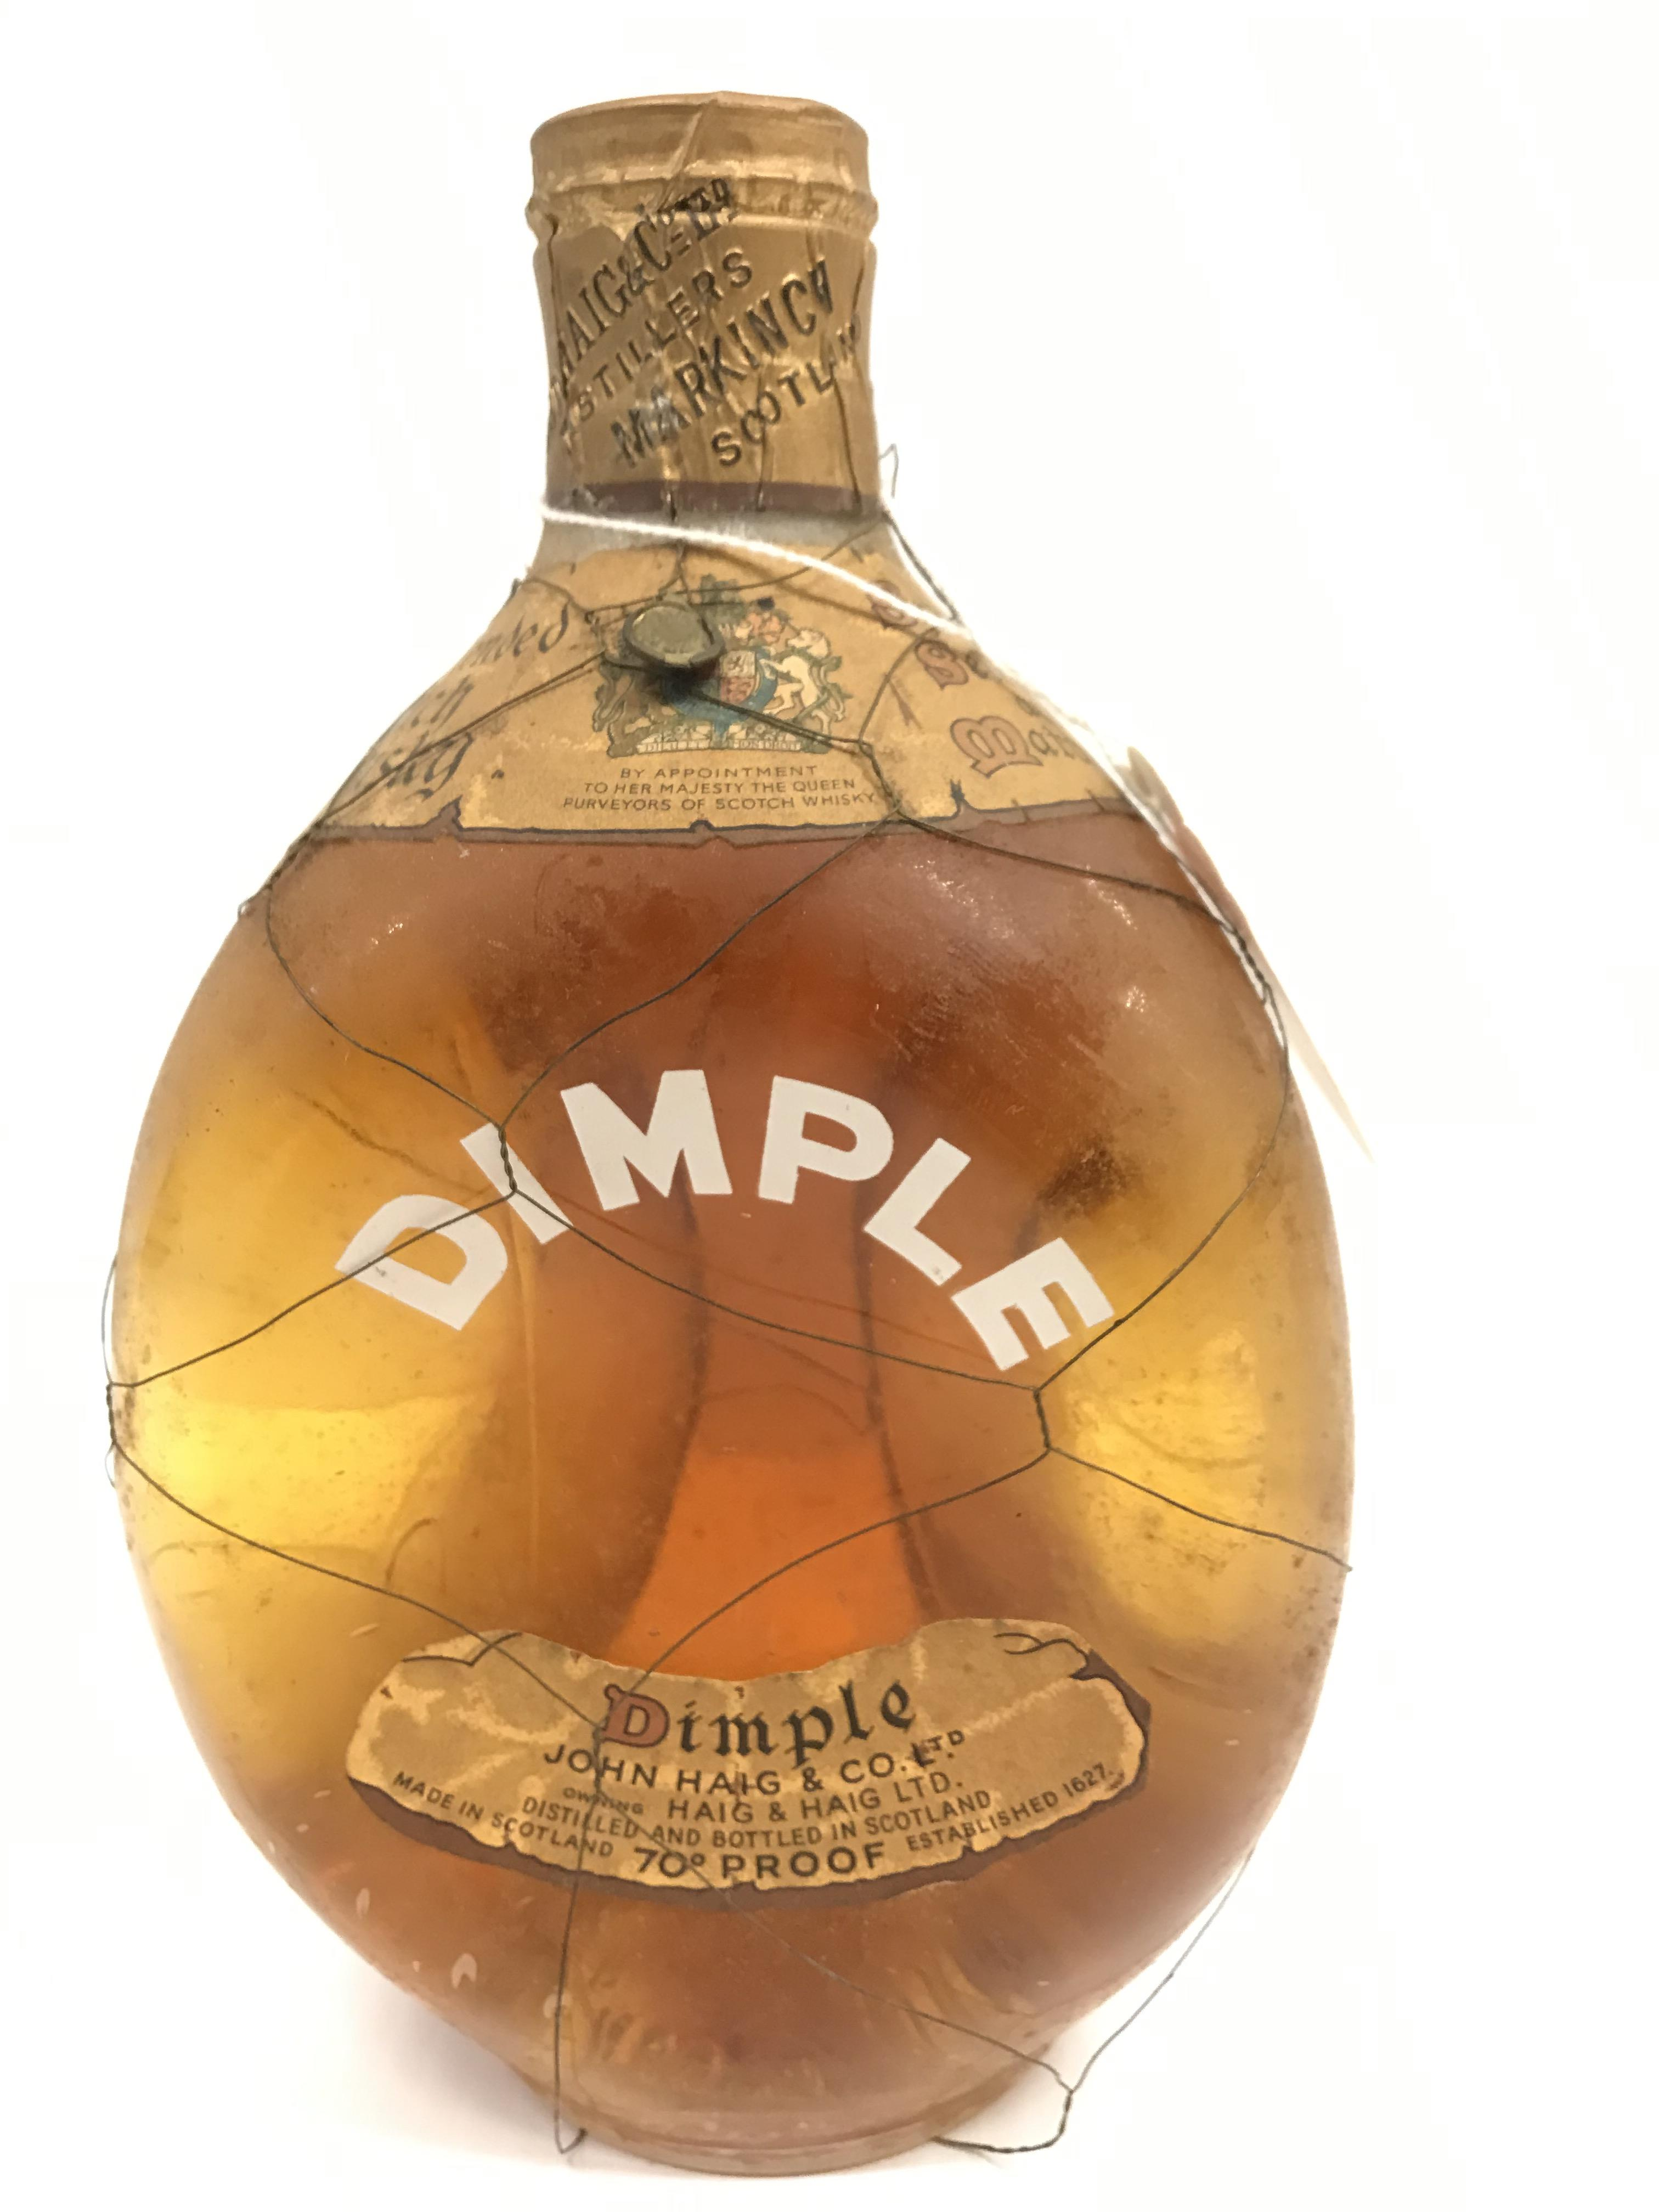 """John Haig & Co. Limited """"Dimple"""" Old Blended Scotch Whisky """"By Appointment to Her Majesty The"""